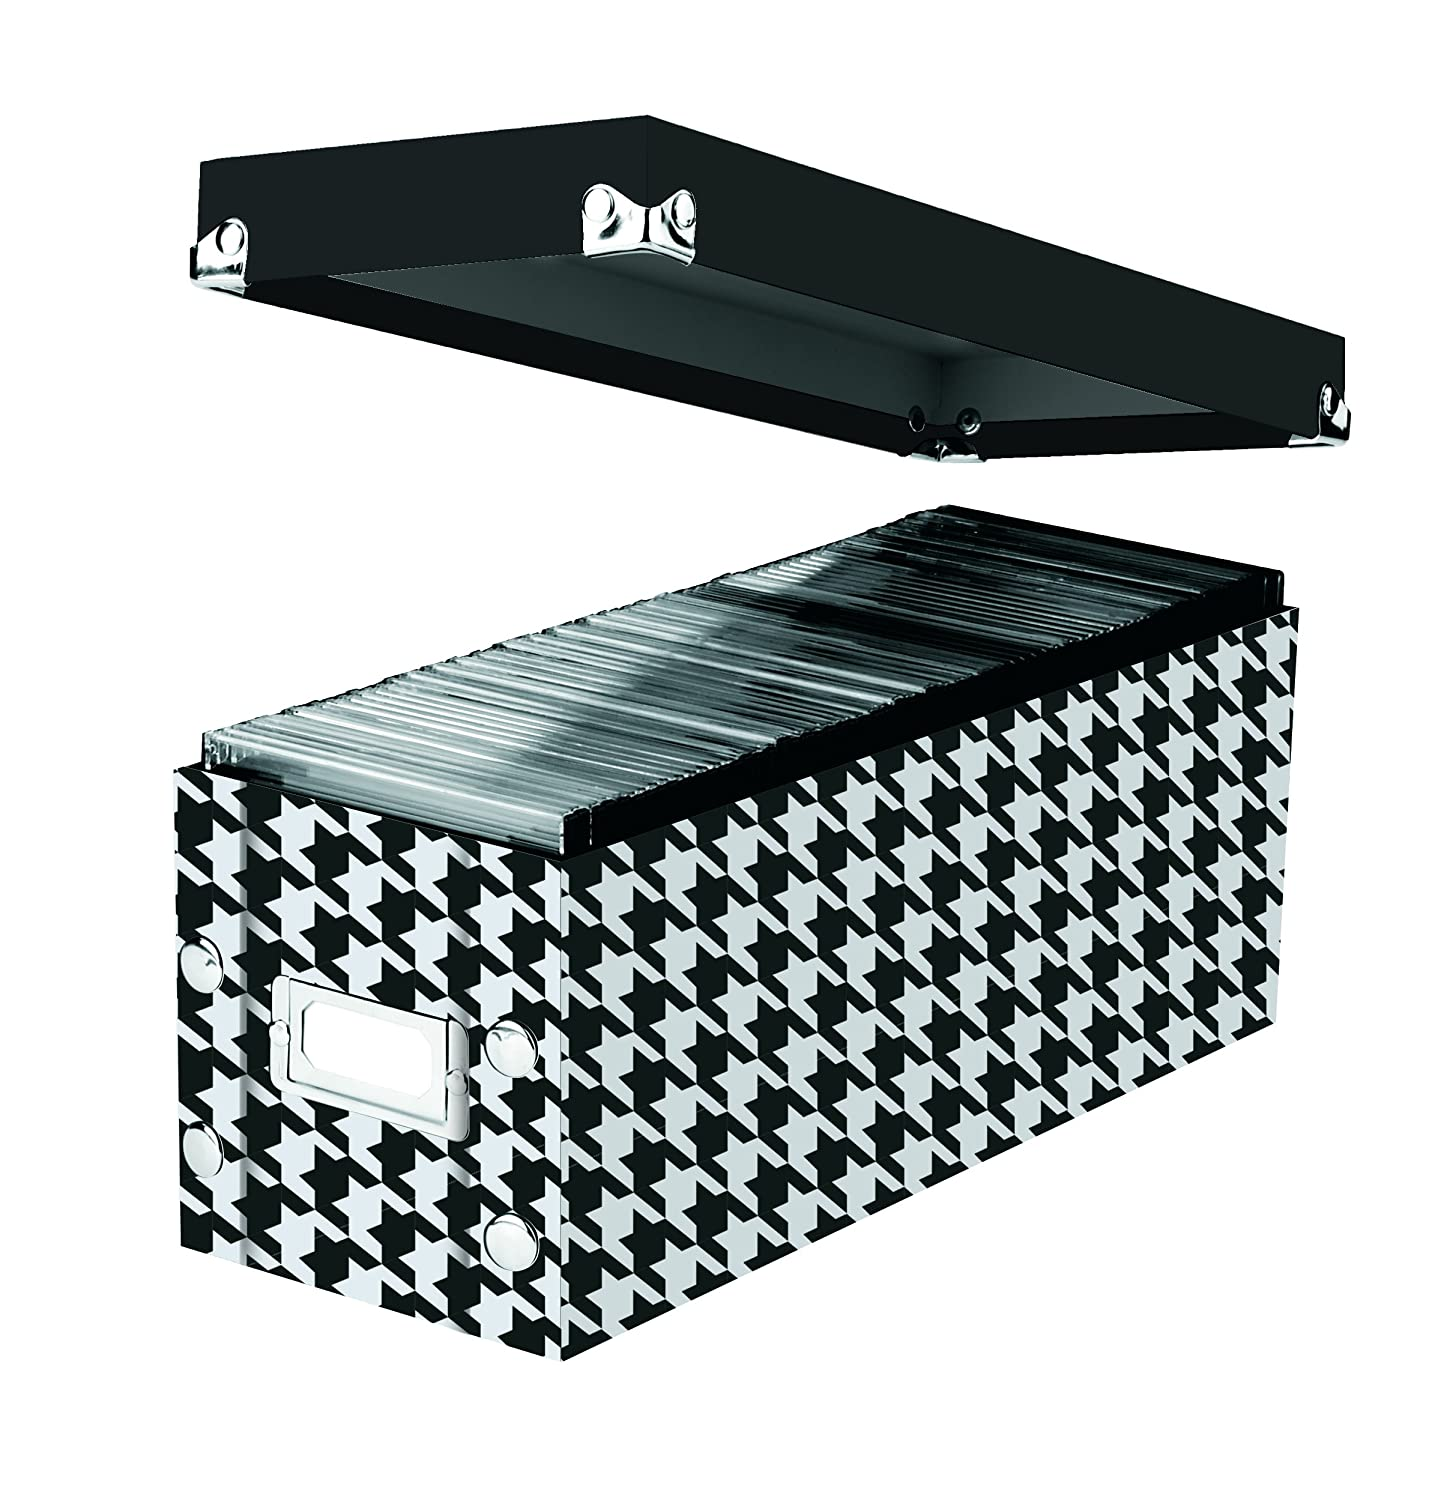 Snap-N-Store CD Storage Boxes Each 13.25 x 5.125 x 5.125 SNS01617 Black Set of 2 Boxes Holds up to 165 CDs